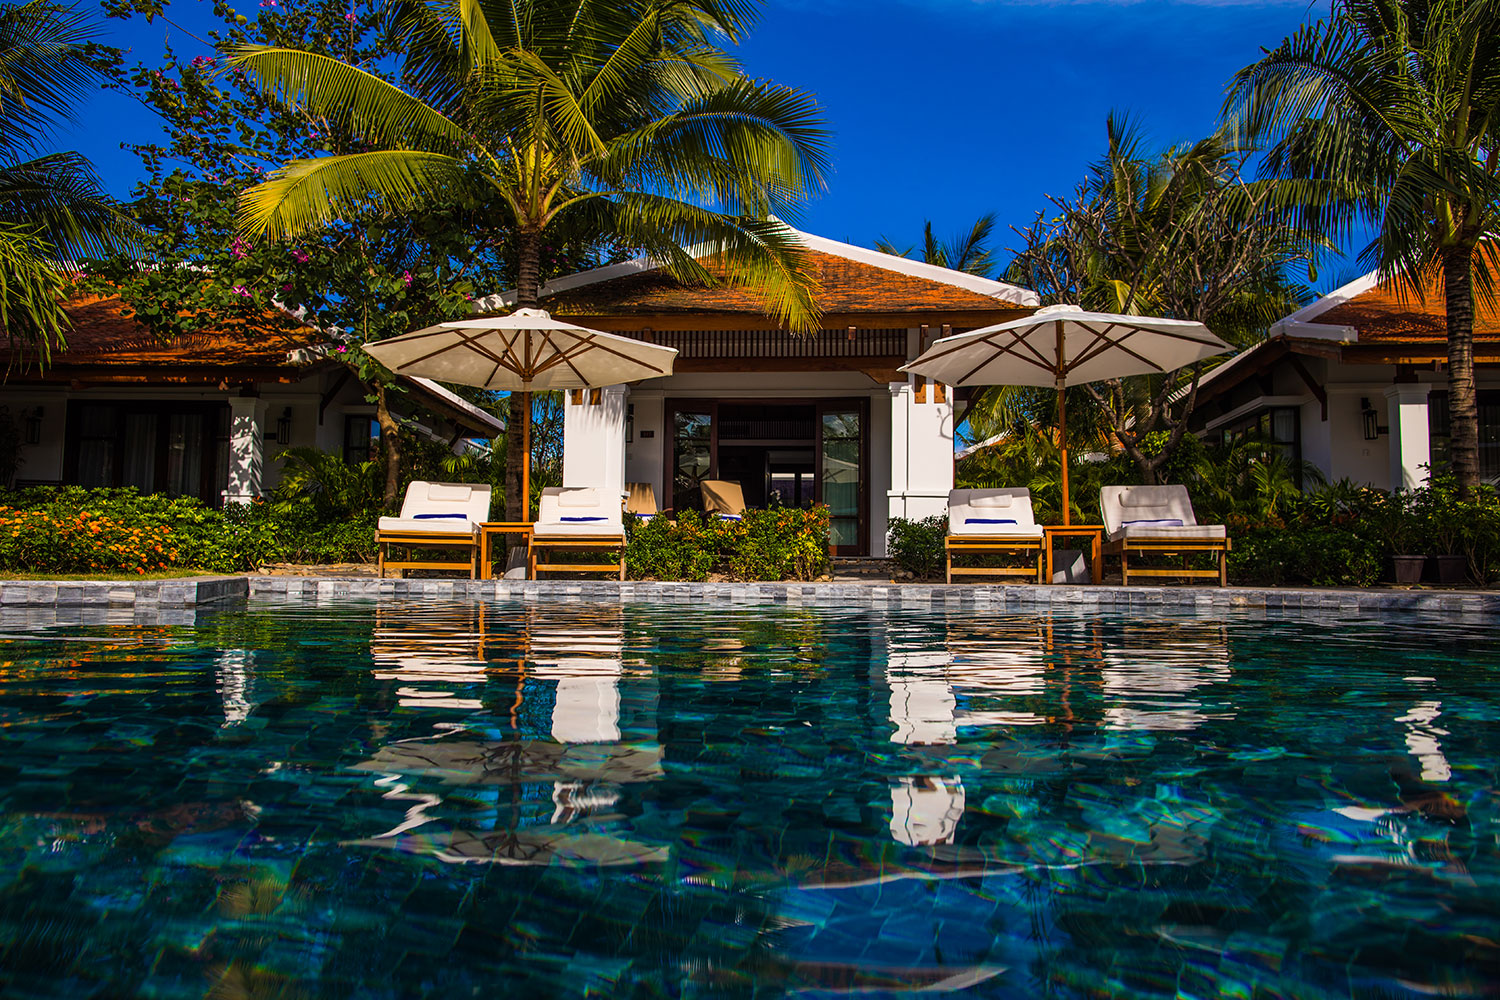 Pool View Villa - With the private terrace just steps from the turquoise tri-level swimming pool, our beautiful Pool View Villas are the perfect choice for those who favour endless days relaxing poolside.